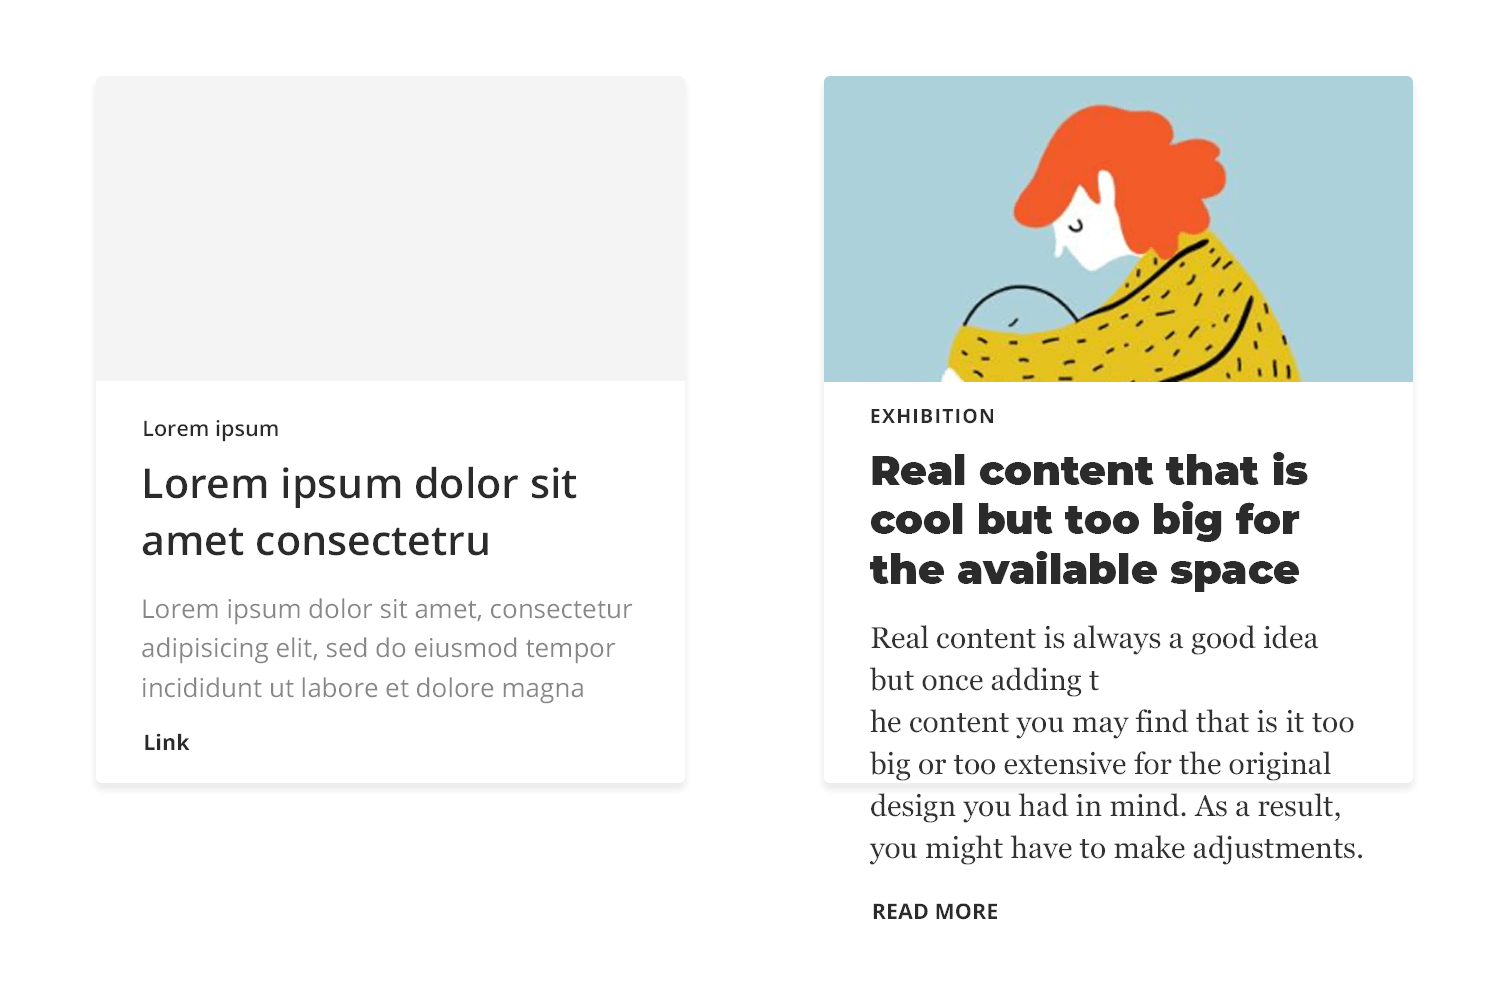 using lorem ipsum in wireframe design can lead to the need to make adjustments later on